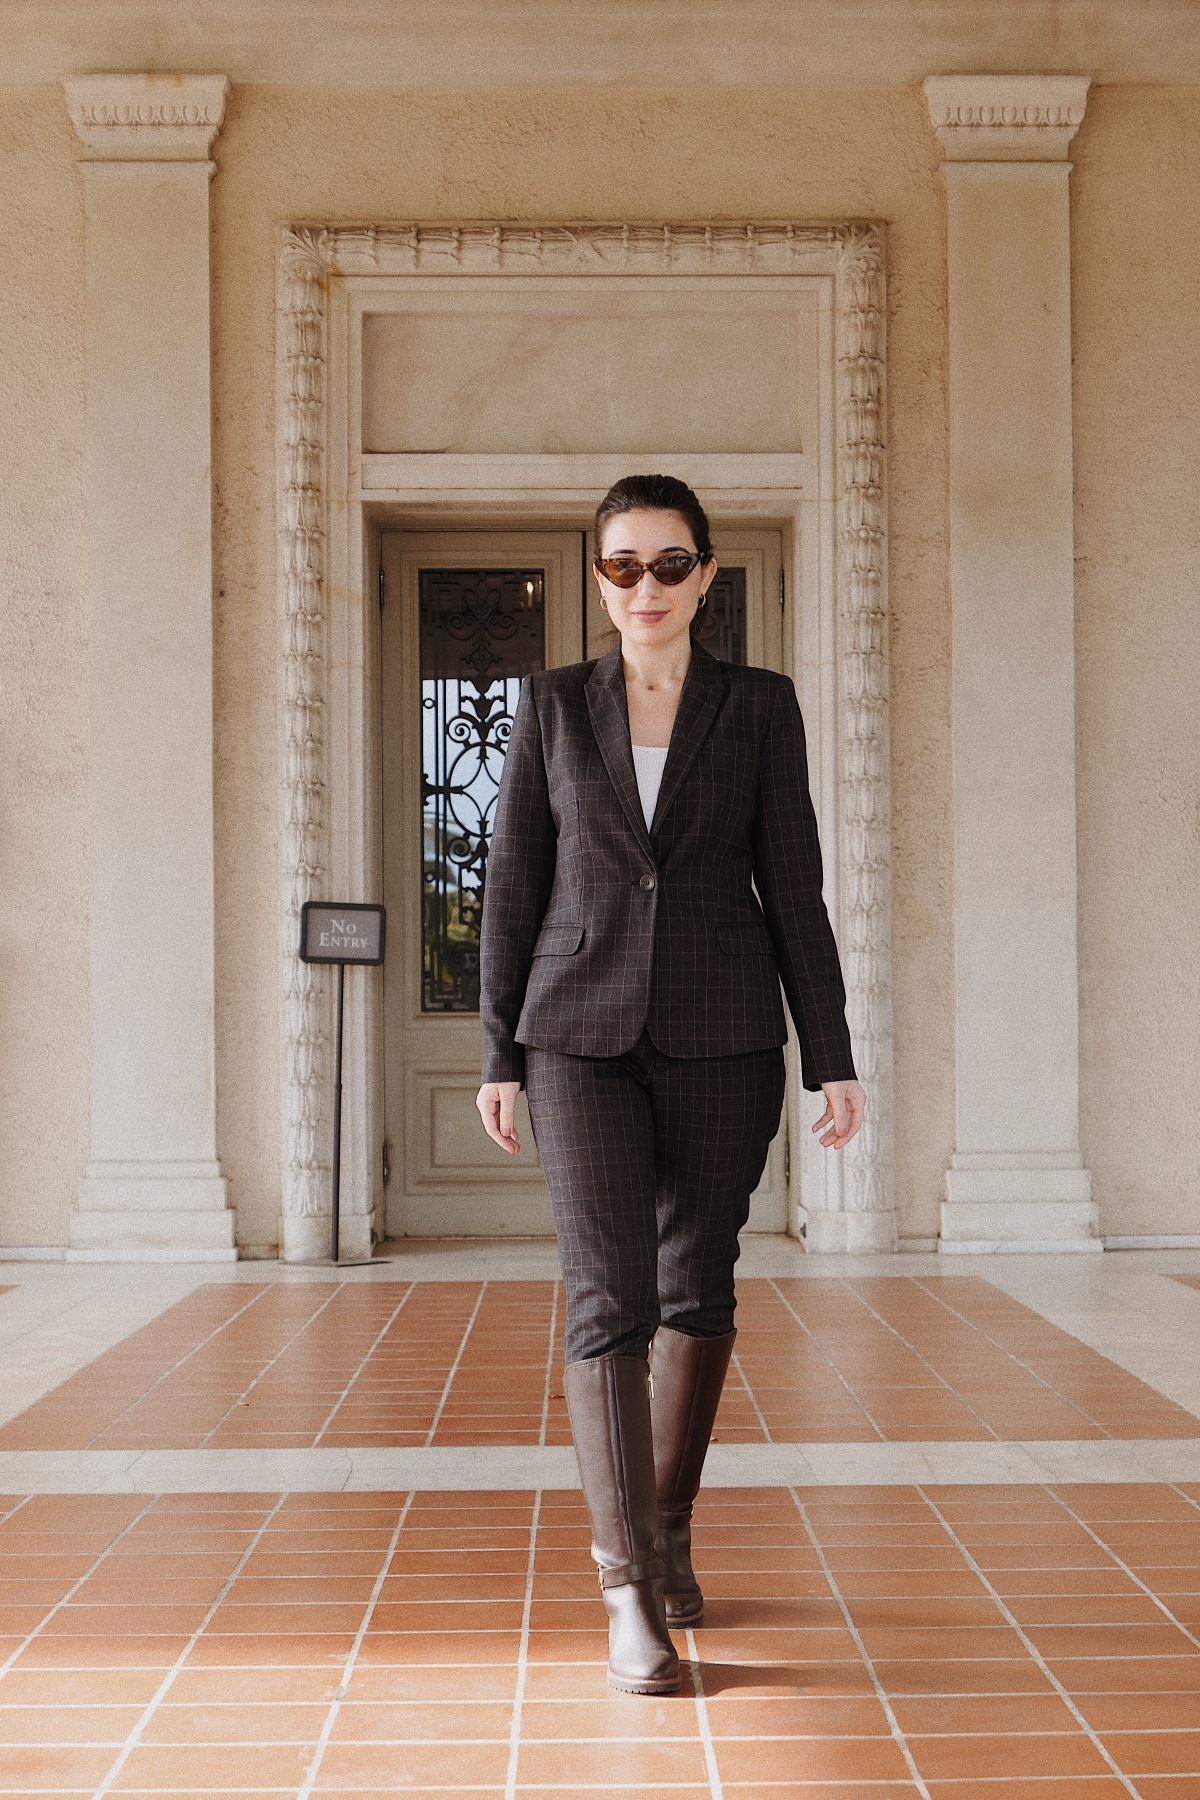 The Huntington Library, San Marino, LA blogger, fashion blogger, lookbook, ootd, outfit of the day, suit, riding boots, Tommy Hilfiger boots, plaid suit, grey suit, vintage sunglasses, H&M suit, H&M, Los Angeles blogger, lifestyle, lifestyle blogger, style diary, fashion editorial